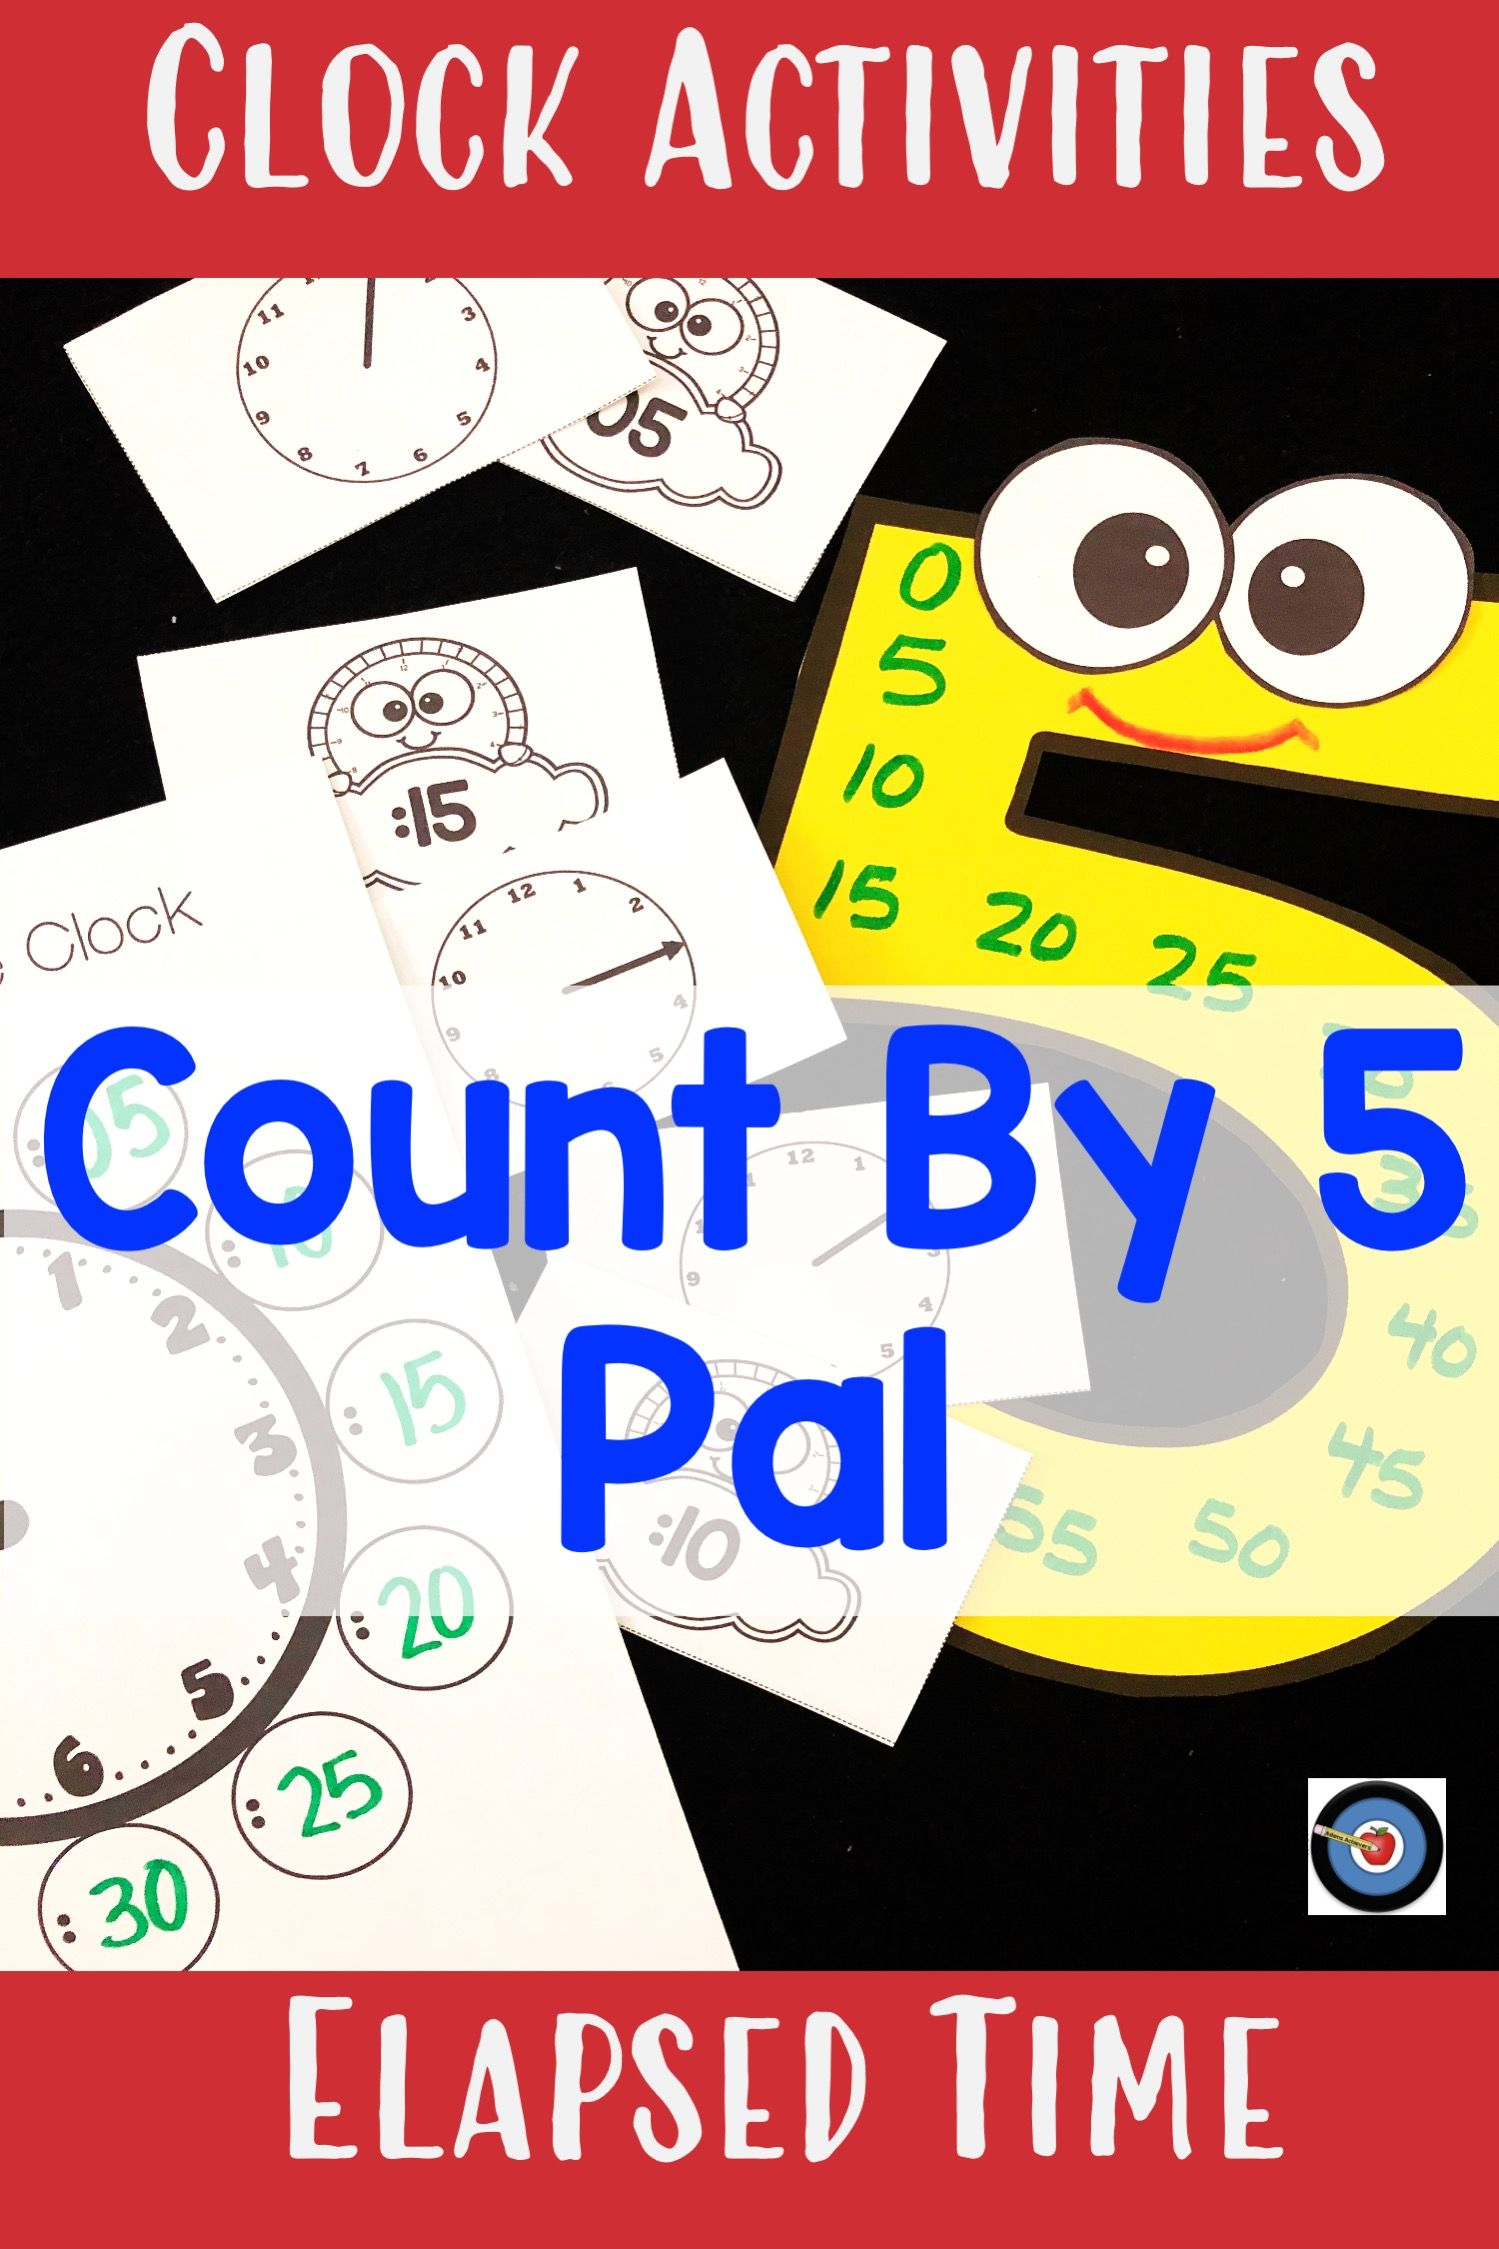 Clocks Elapsed Time Activities And Craft In